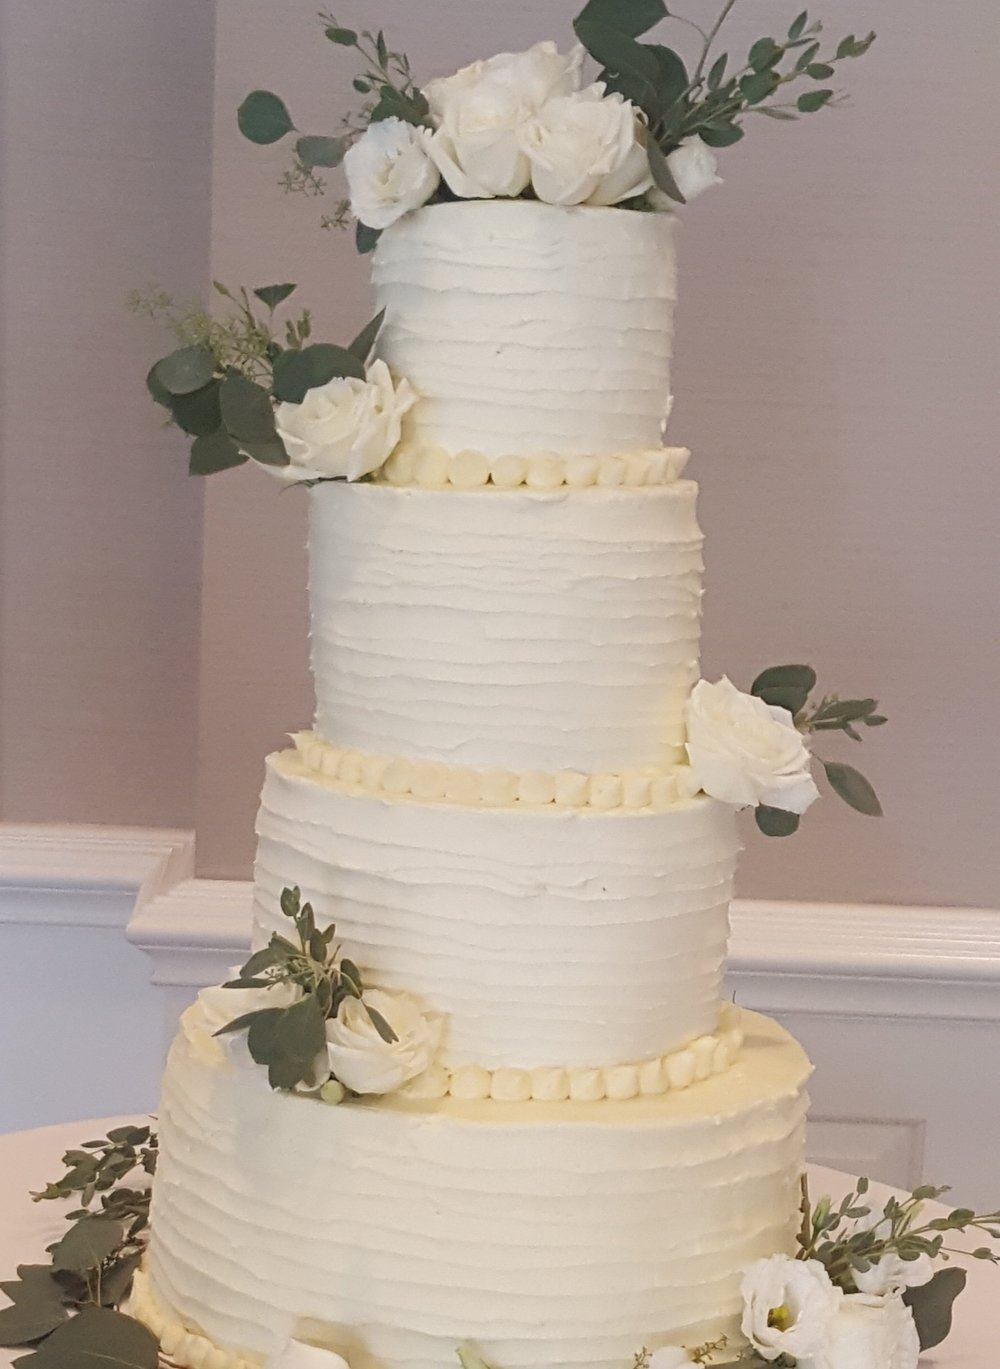 WEDDING CAKE AMY.jpg